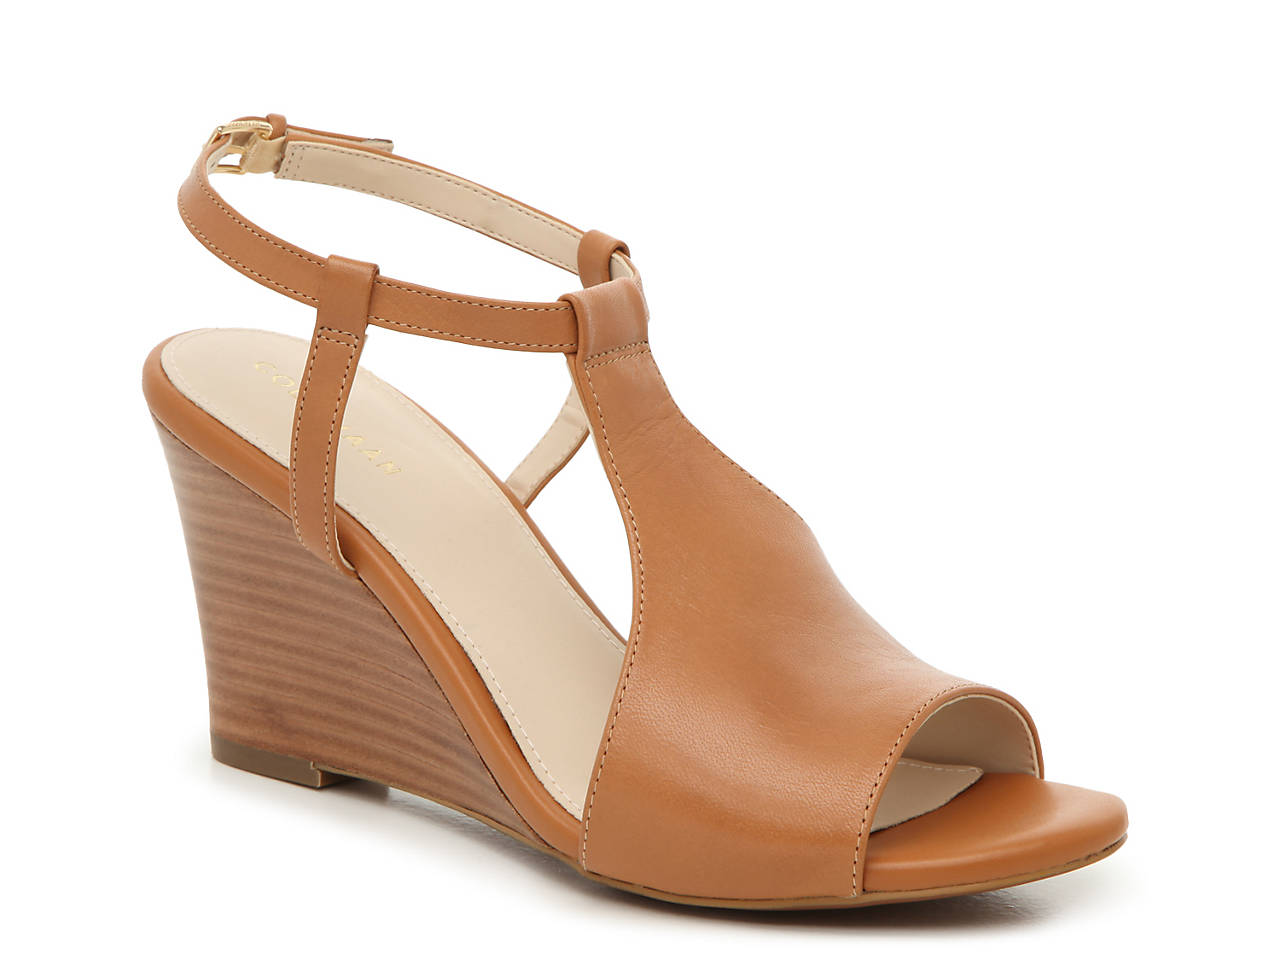 b47f12f27a4 Cole Haan Maddie Wedge Sandal Women s Shoes